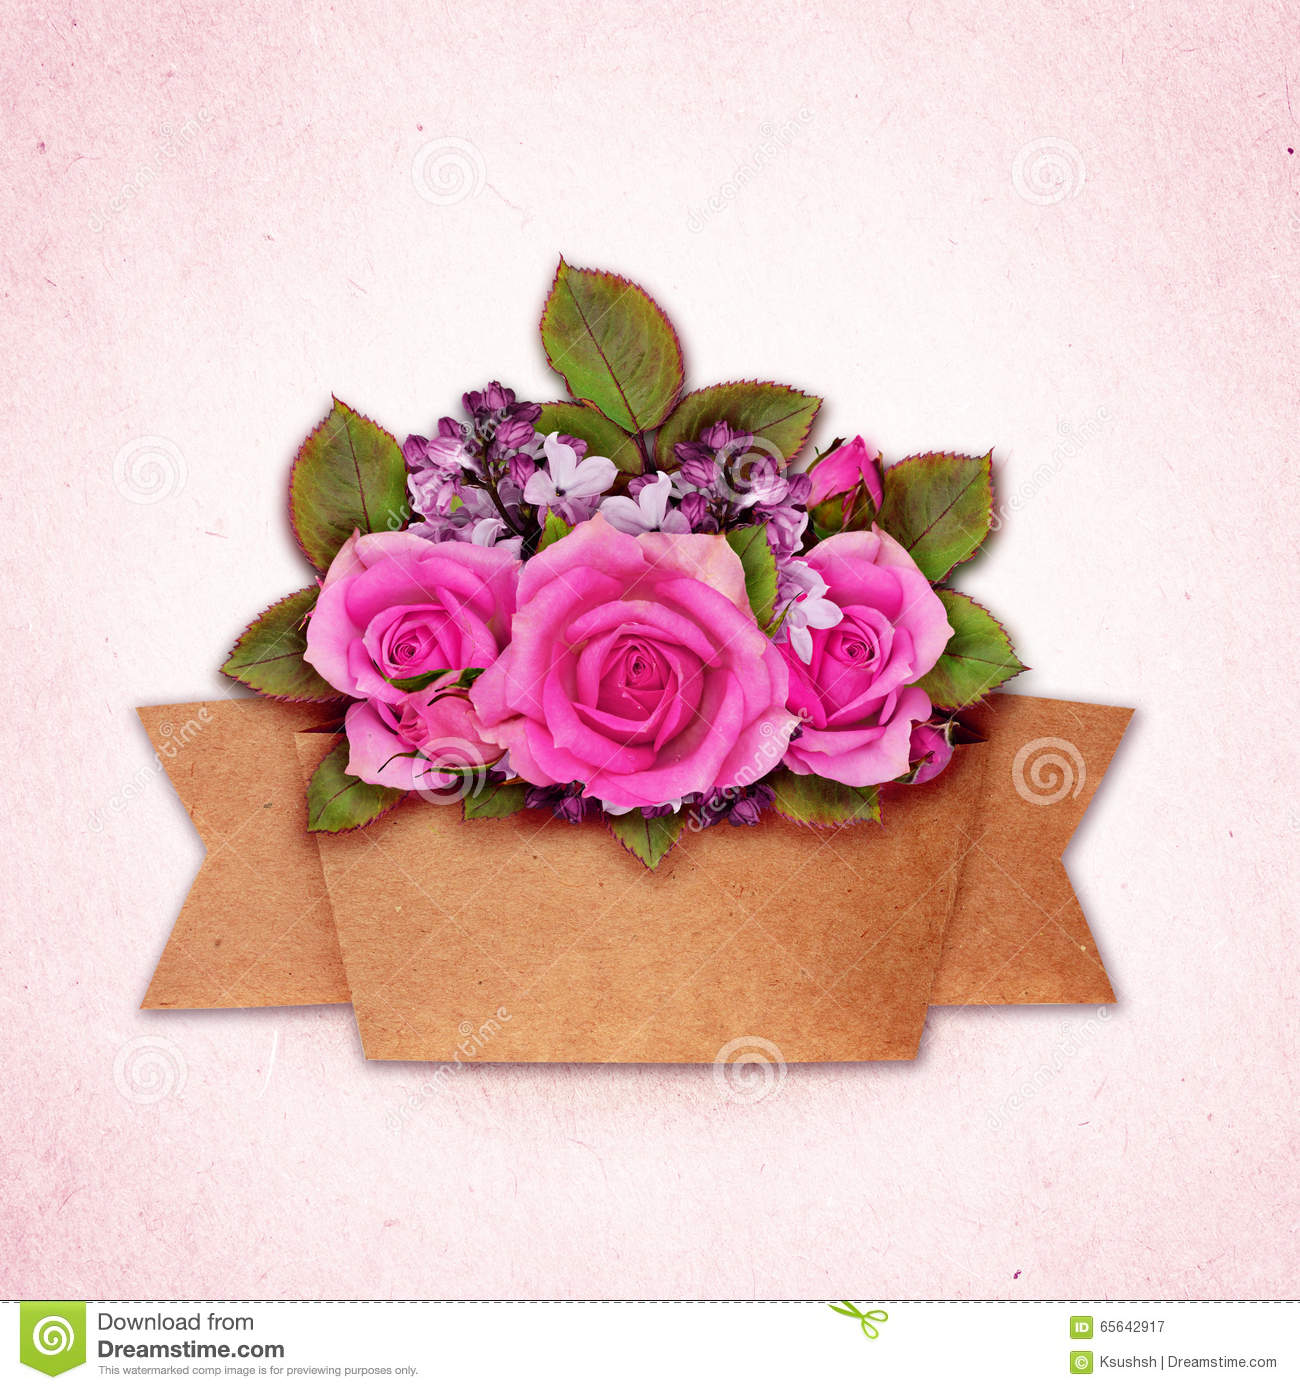 Rose and lilac flowers bouquet with craft paper ribbon stock image download rose and lilac flowers bouquet with craft paper ribbon stock image image of square izmirmasajfo